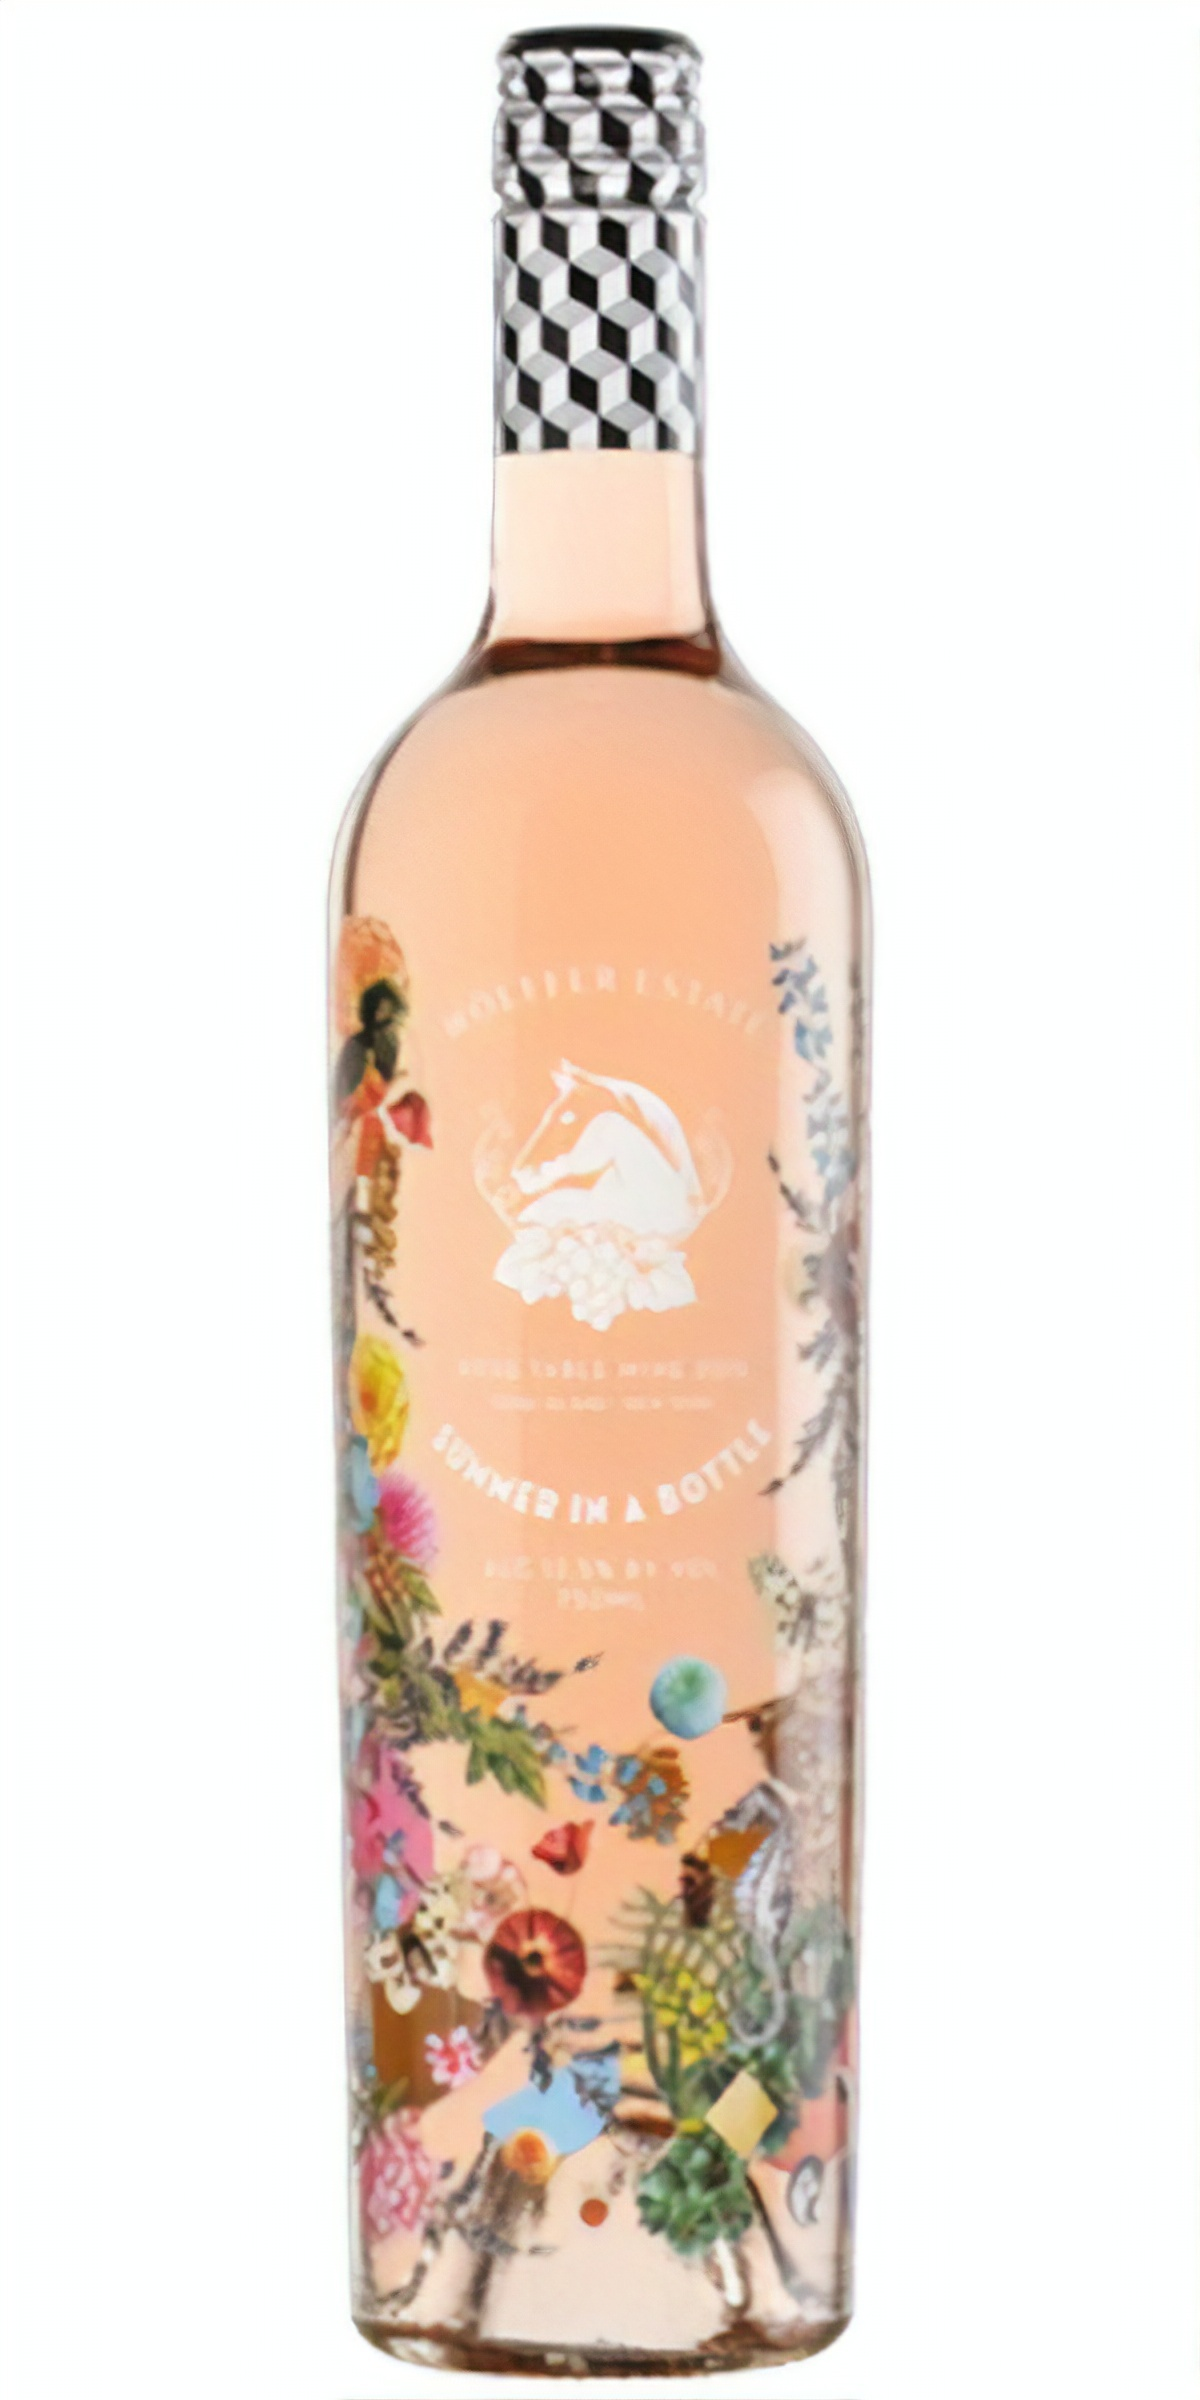 Wölffer Estate Vineyard, Summer in a Bottle and Estate Rosé, 2019